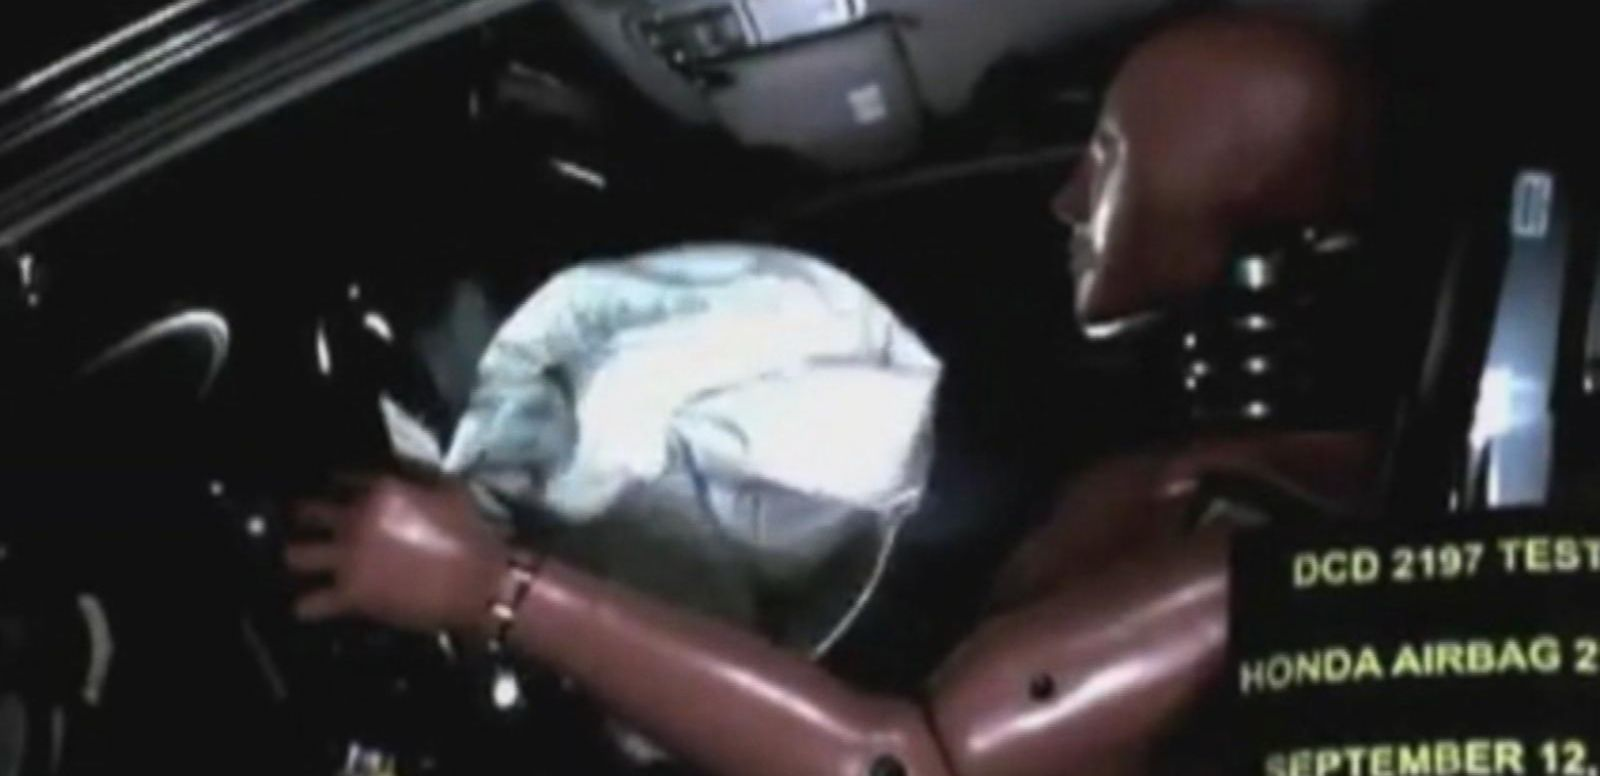 VIDEO: GMA Investigates: Do Used Car Dealers Know About Open Airbag Recalls?